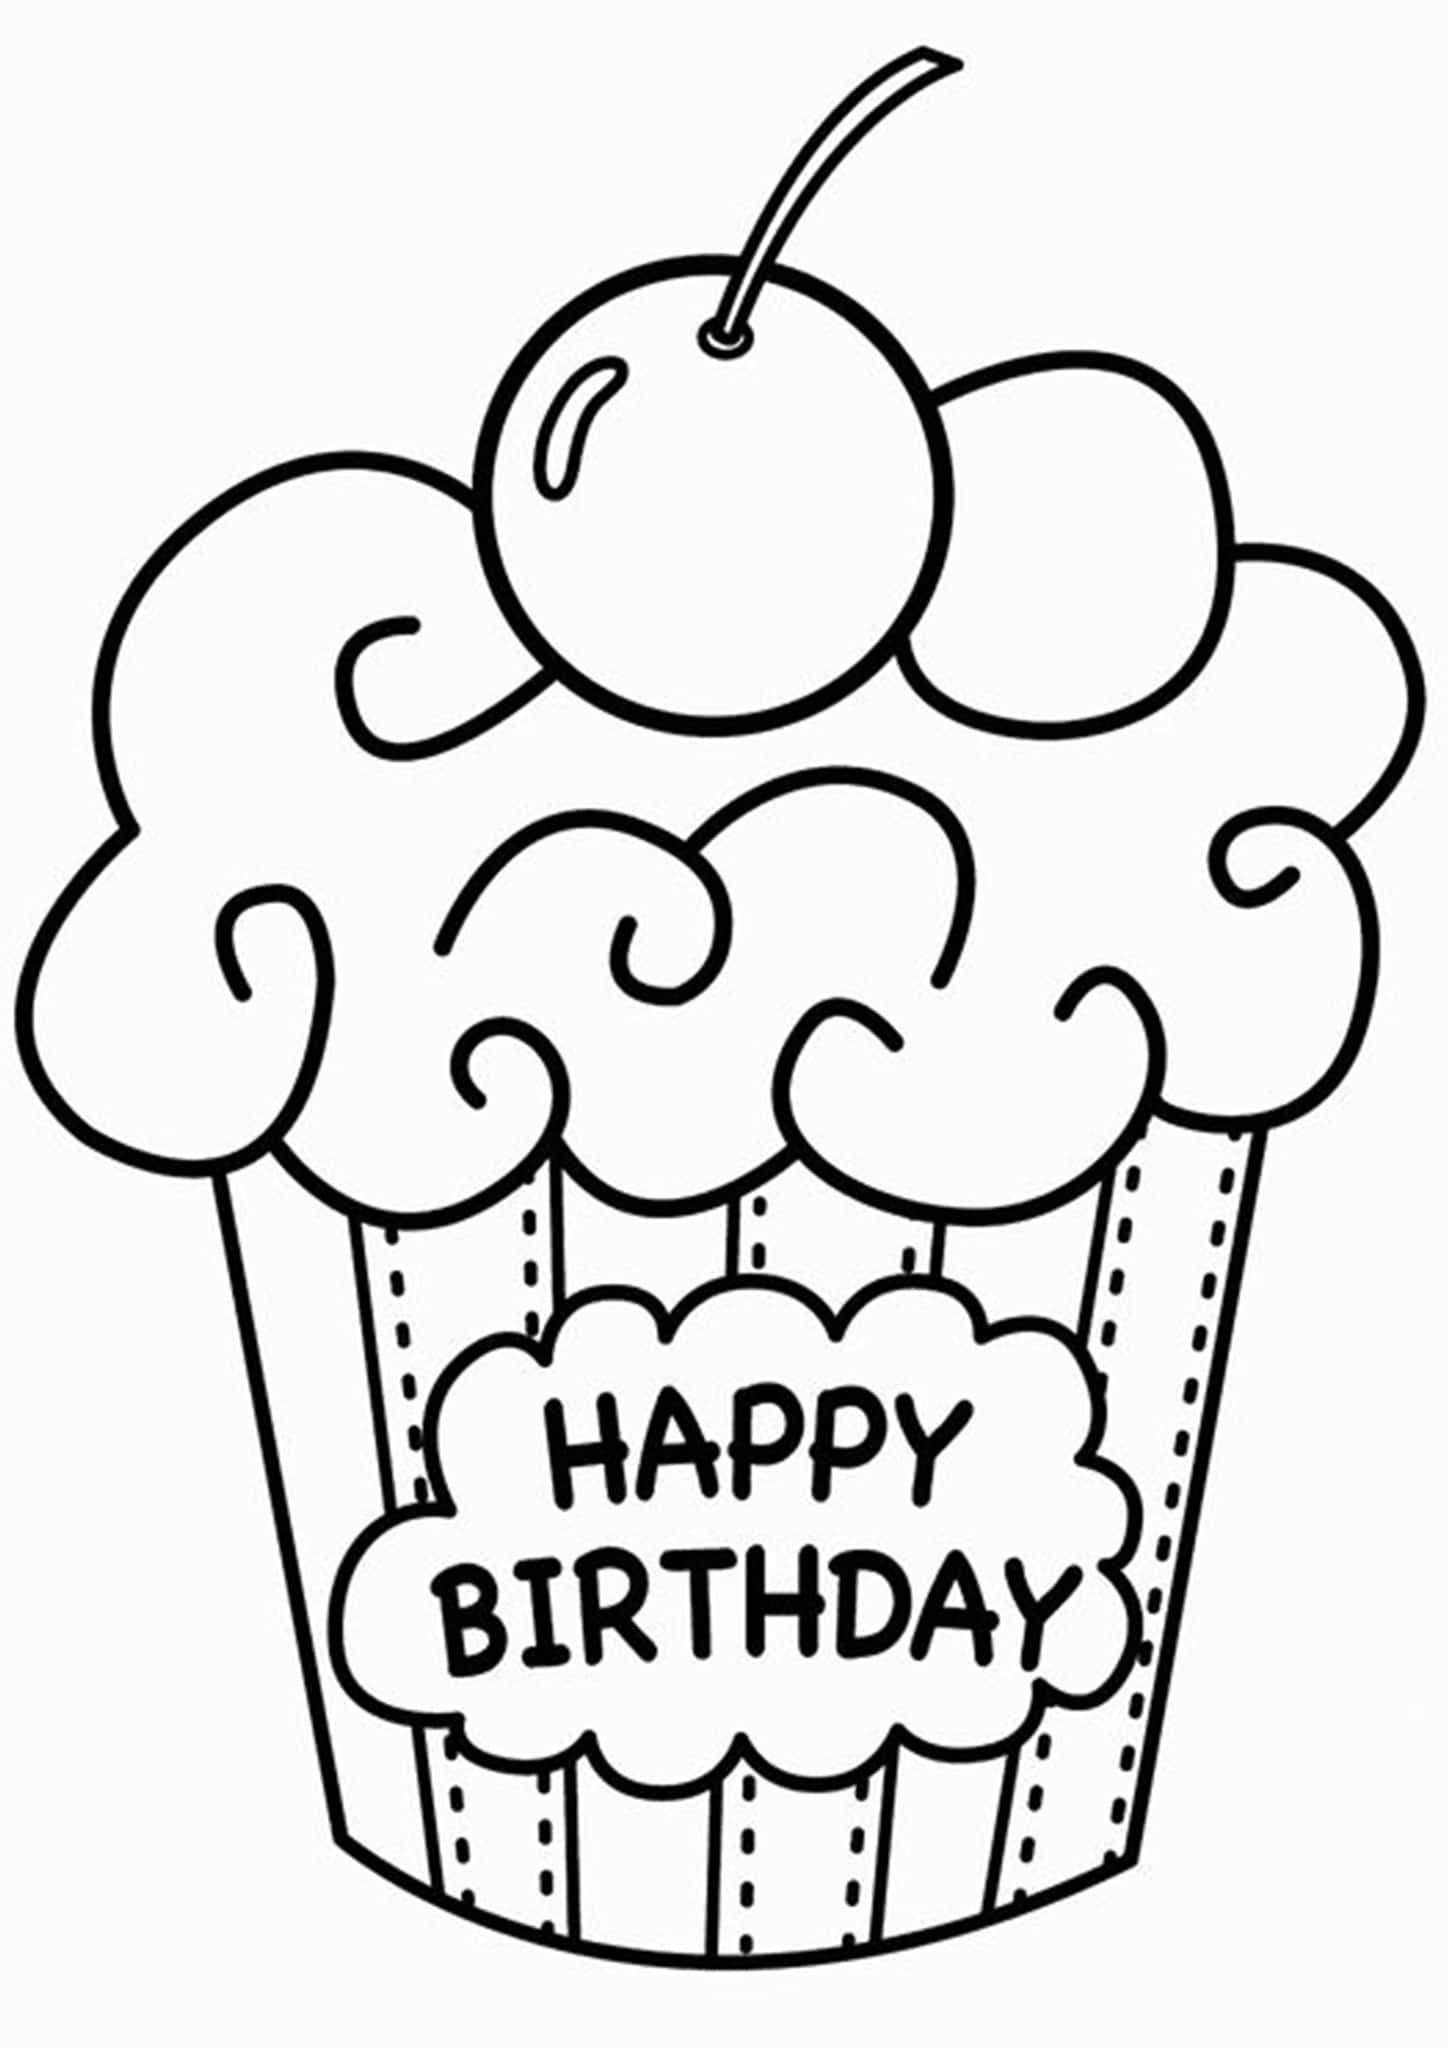 Free Easy To Print Cupcake Coloring Pages Happy Birthday Coloring Pages Happy Birthday Printable Cupcake Coloring Pages